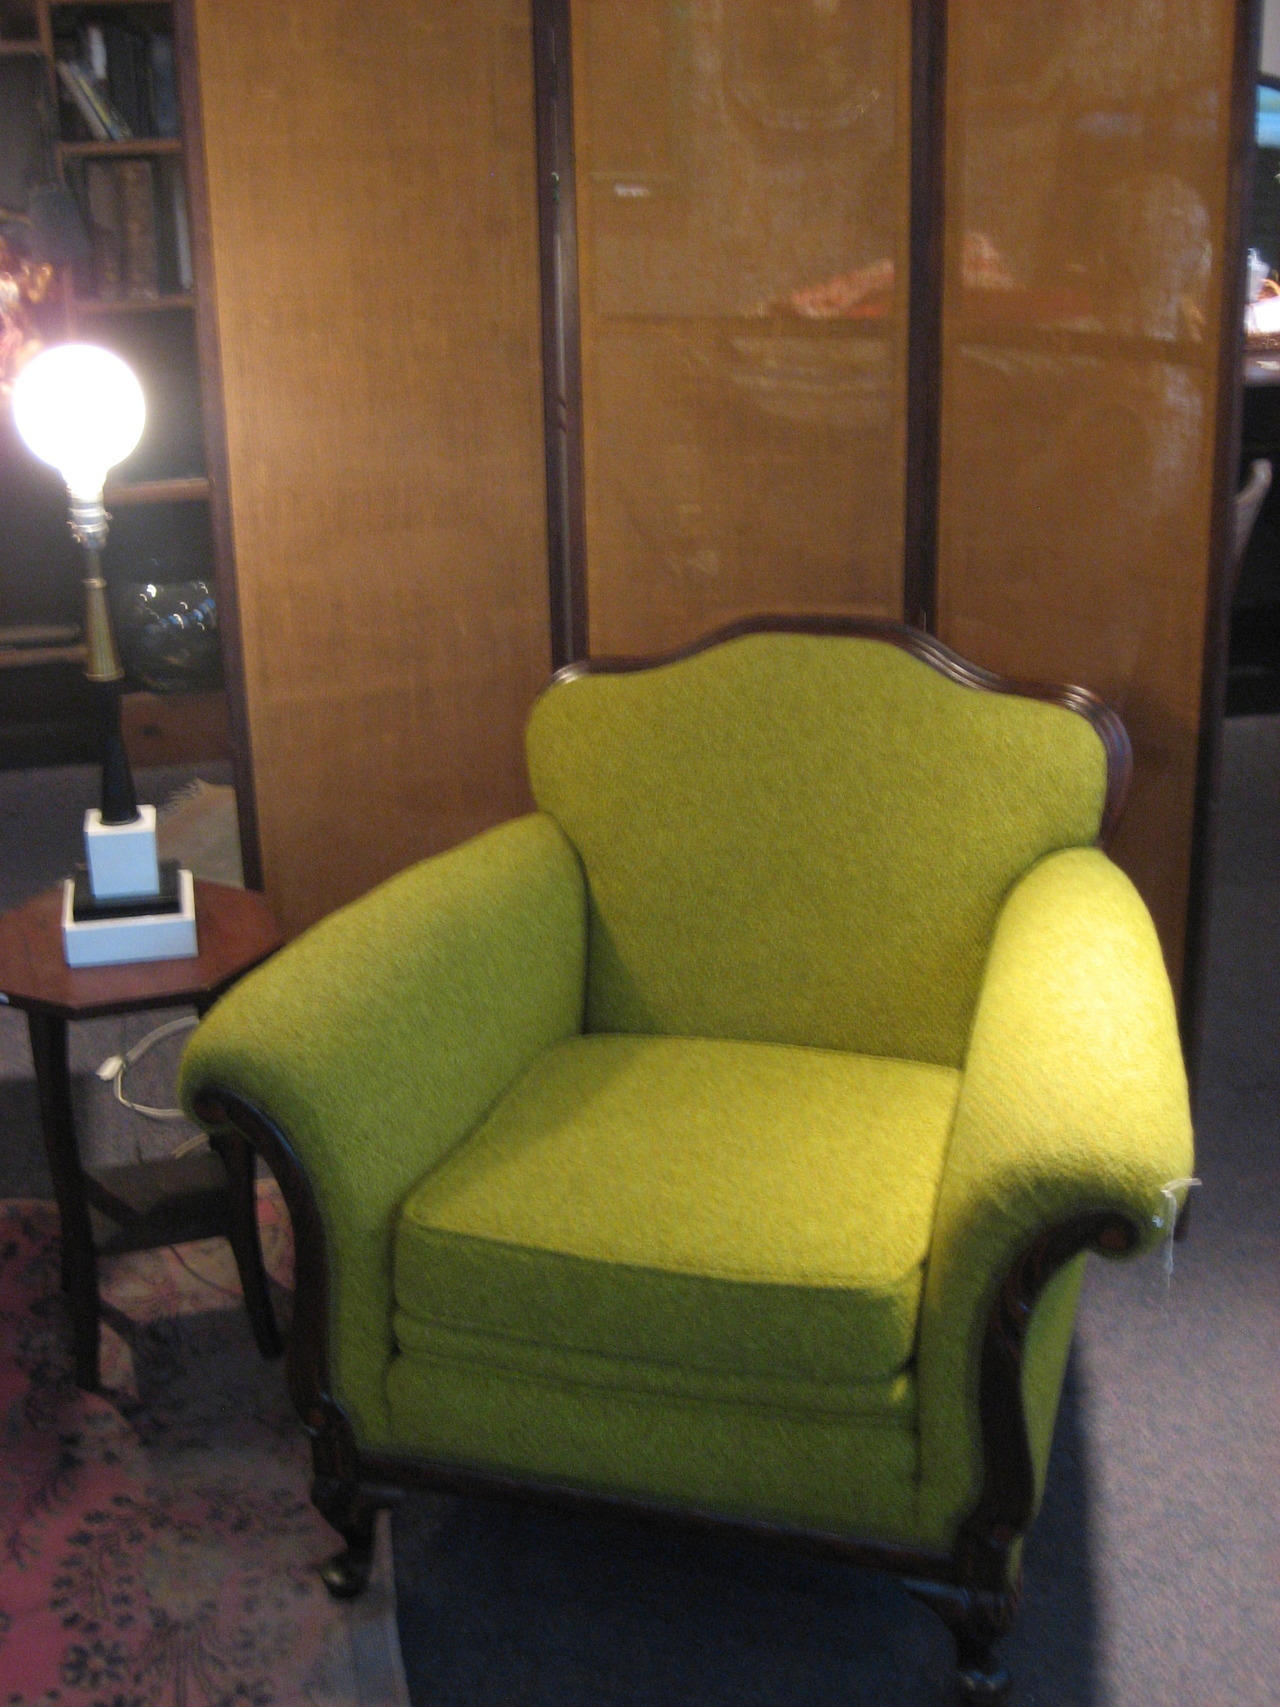 This chartreuse armchair is highly enjoyable.